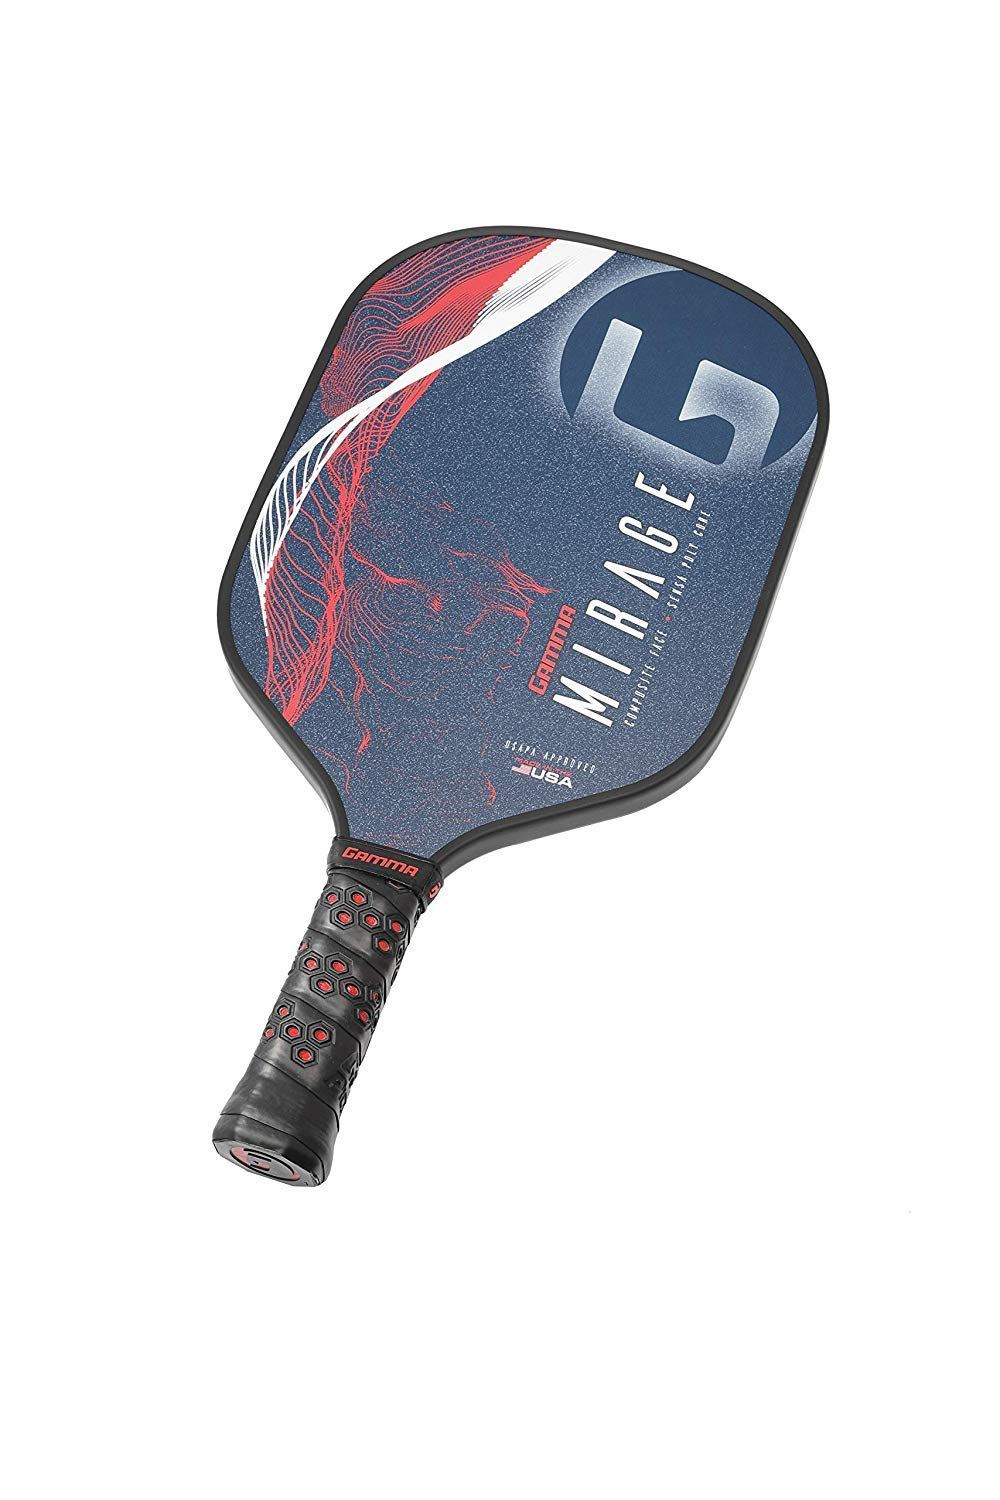 GAMMA Mirage Composite Pickleball Paddle: Pickle Ball Paddles for Indoor & Outdoor Play - USAPA Approved Racquet for Adults & Kids - Red/White/Blue by Gamma (Image #7)